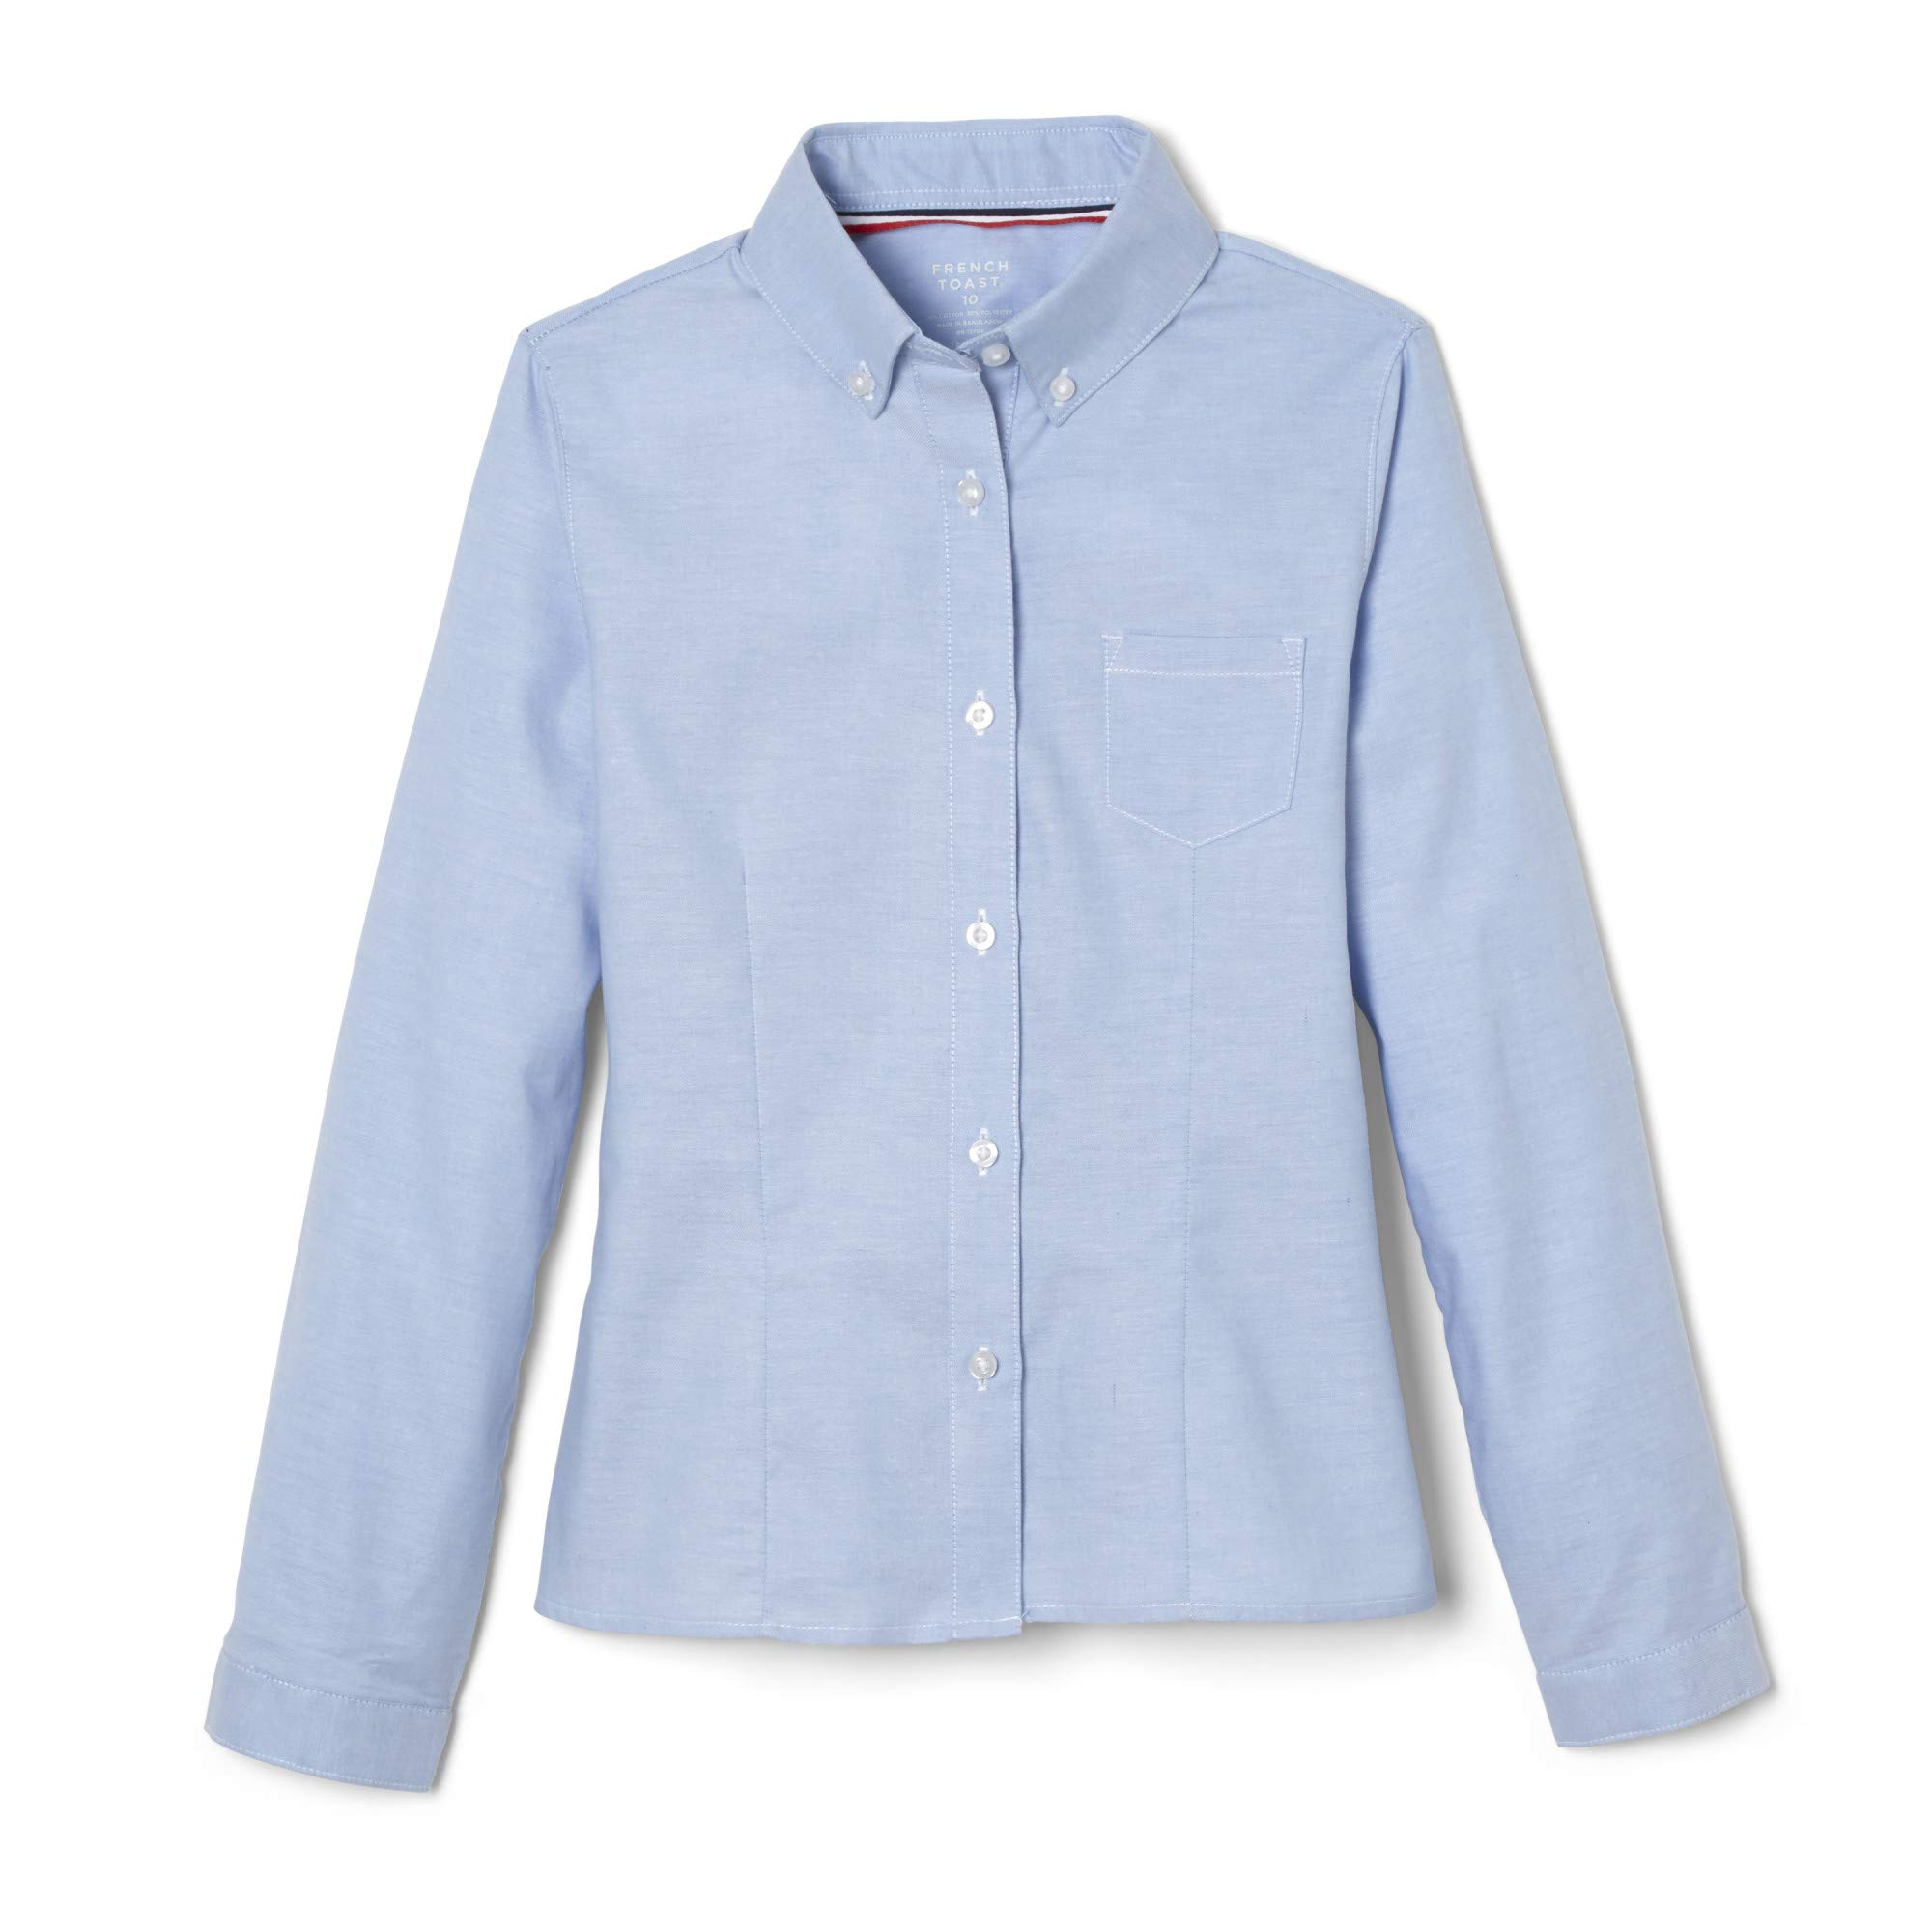 French Toast Big Girls' Long Sleeve Button Down Oxford, Light Blue, 16 by French Toast